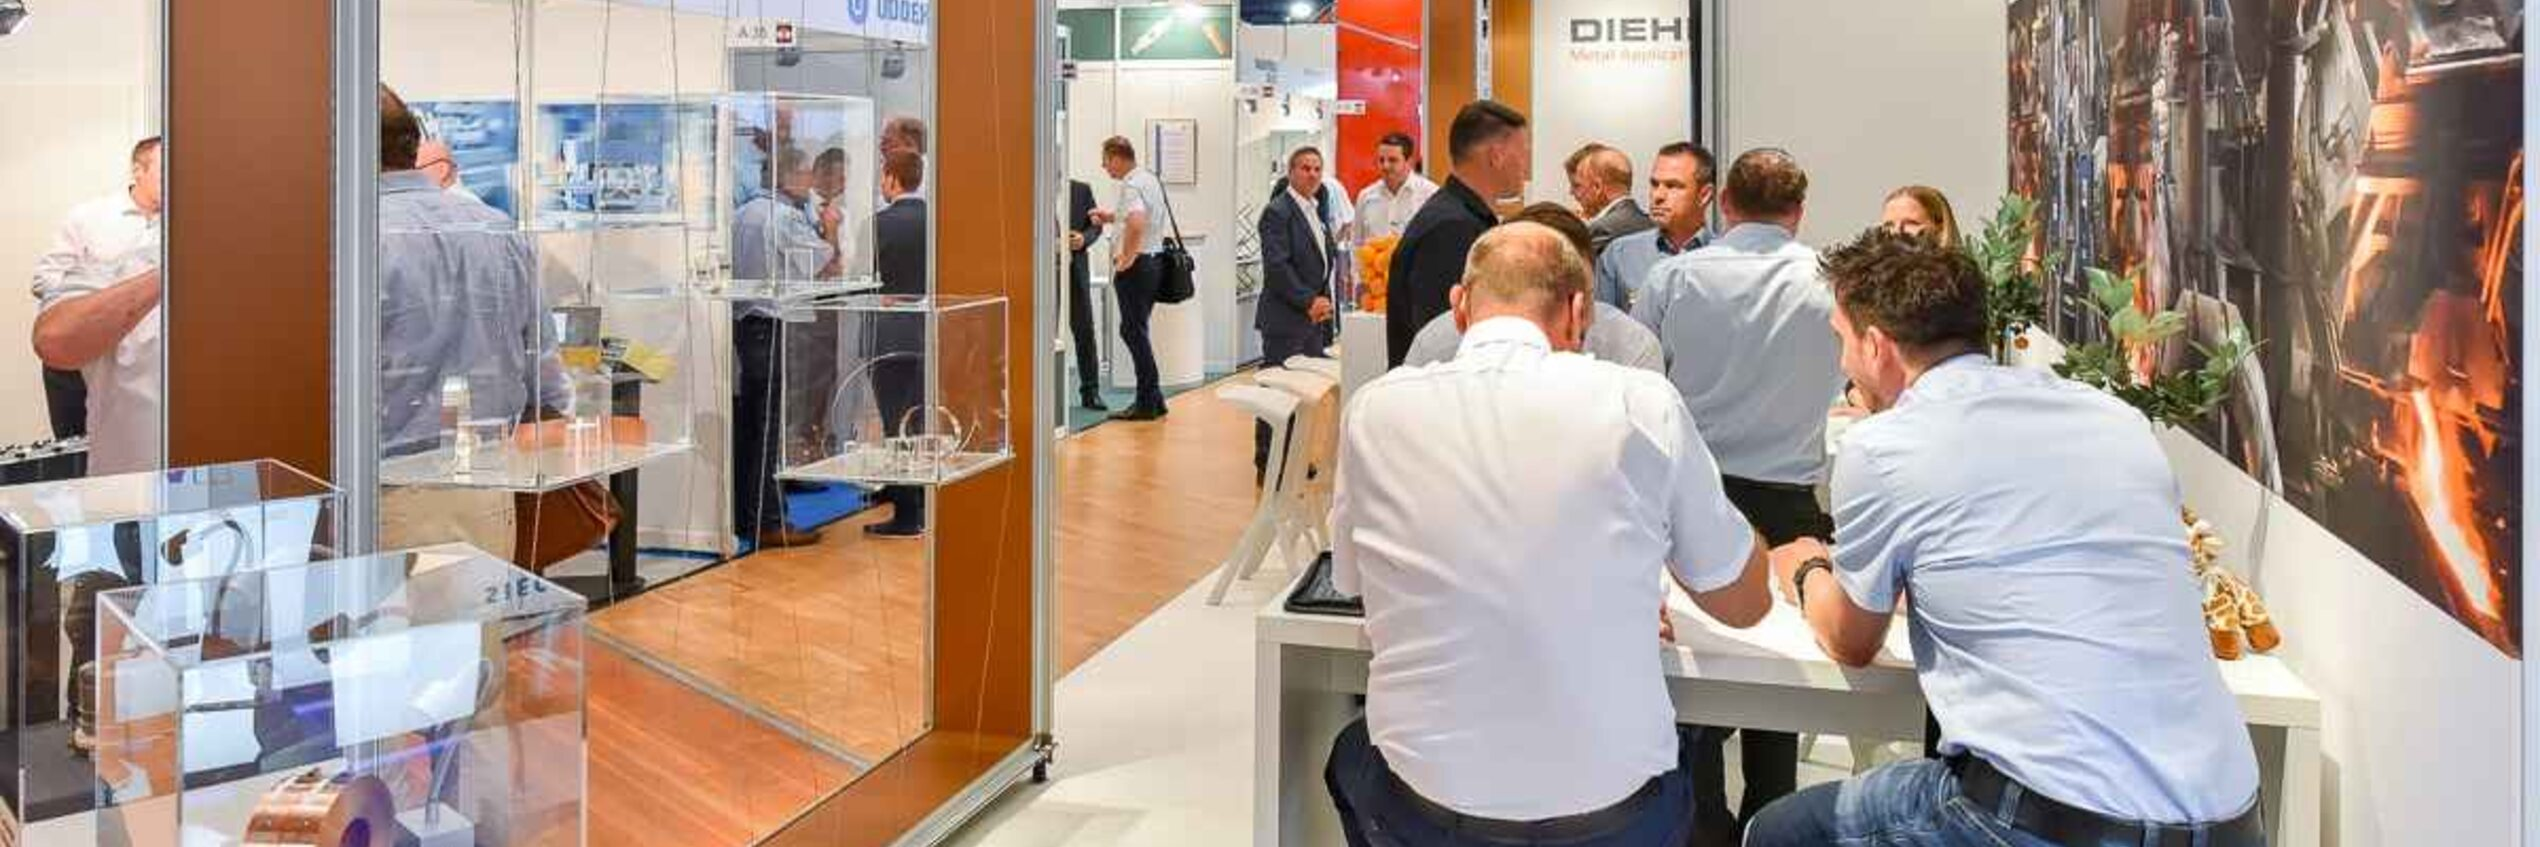 The fair booth, shining in new design, of Diehl Metal Applications and Sundwiger Messingwerk. (Stanztec 2018)